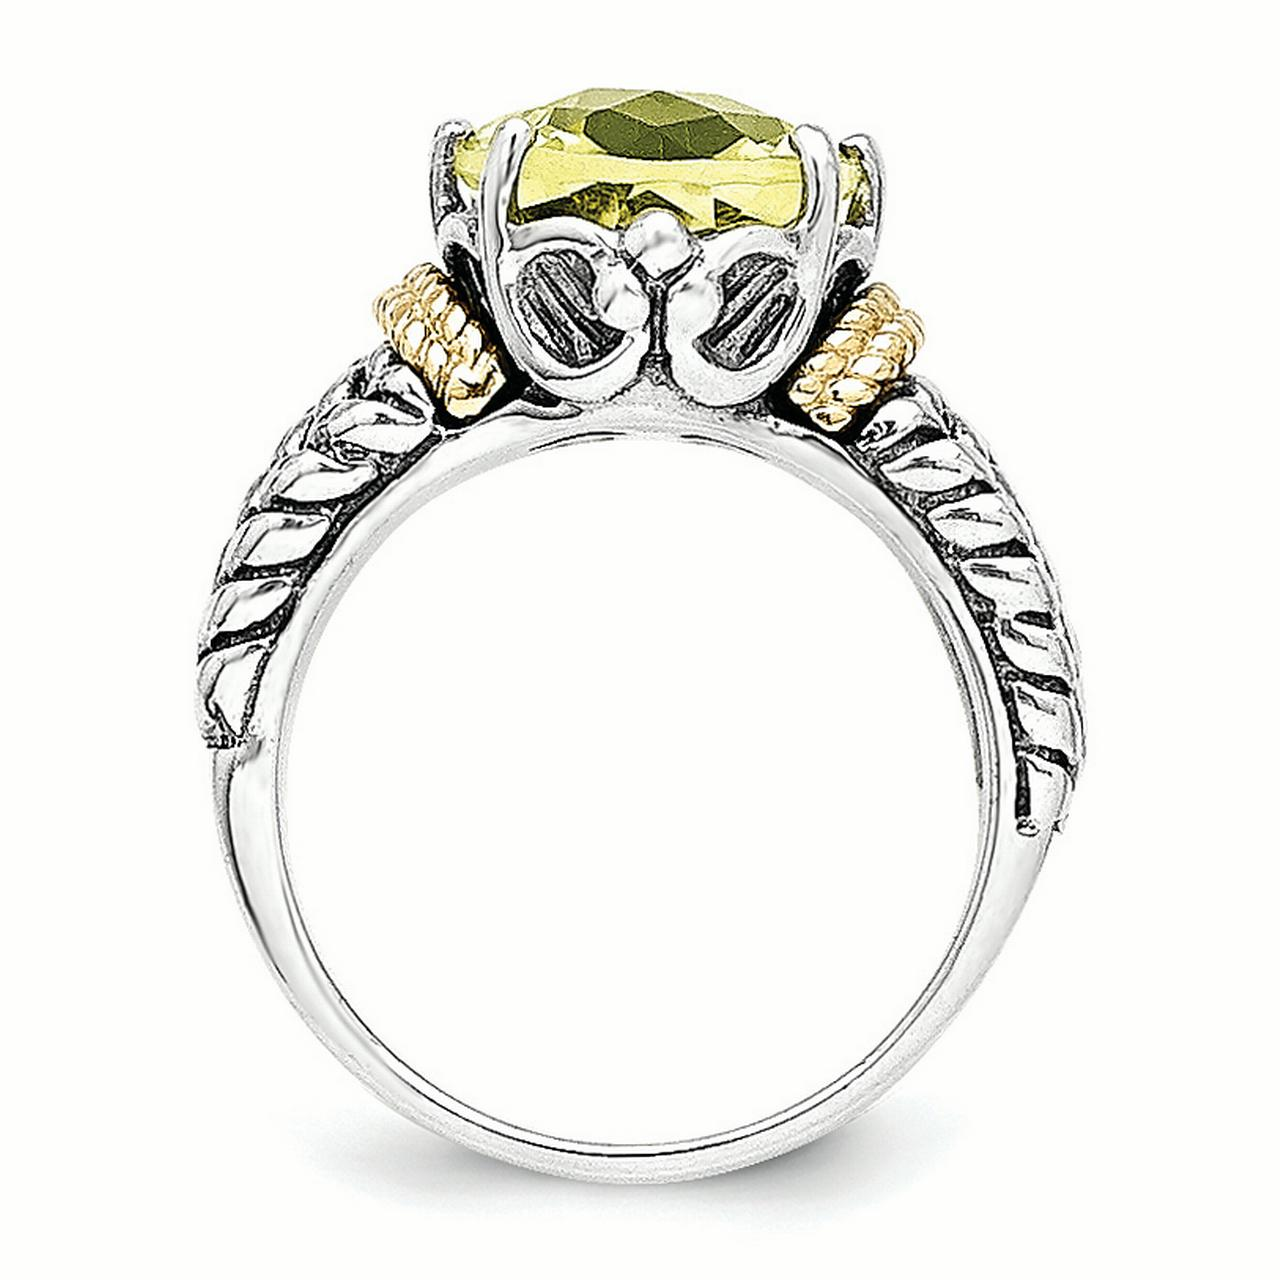 Sterling Silver Two Tone Silver And Gold Plated Sterling Silver w/Lemon Quartz Ring - image 2 de 3